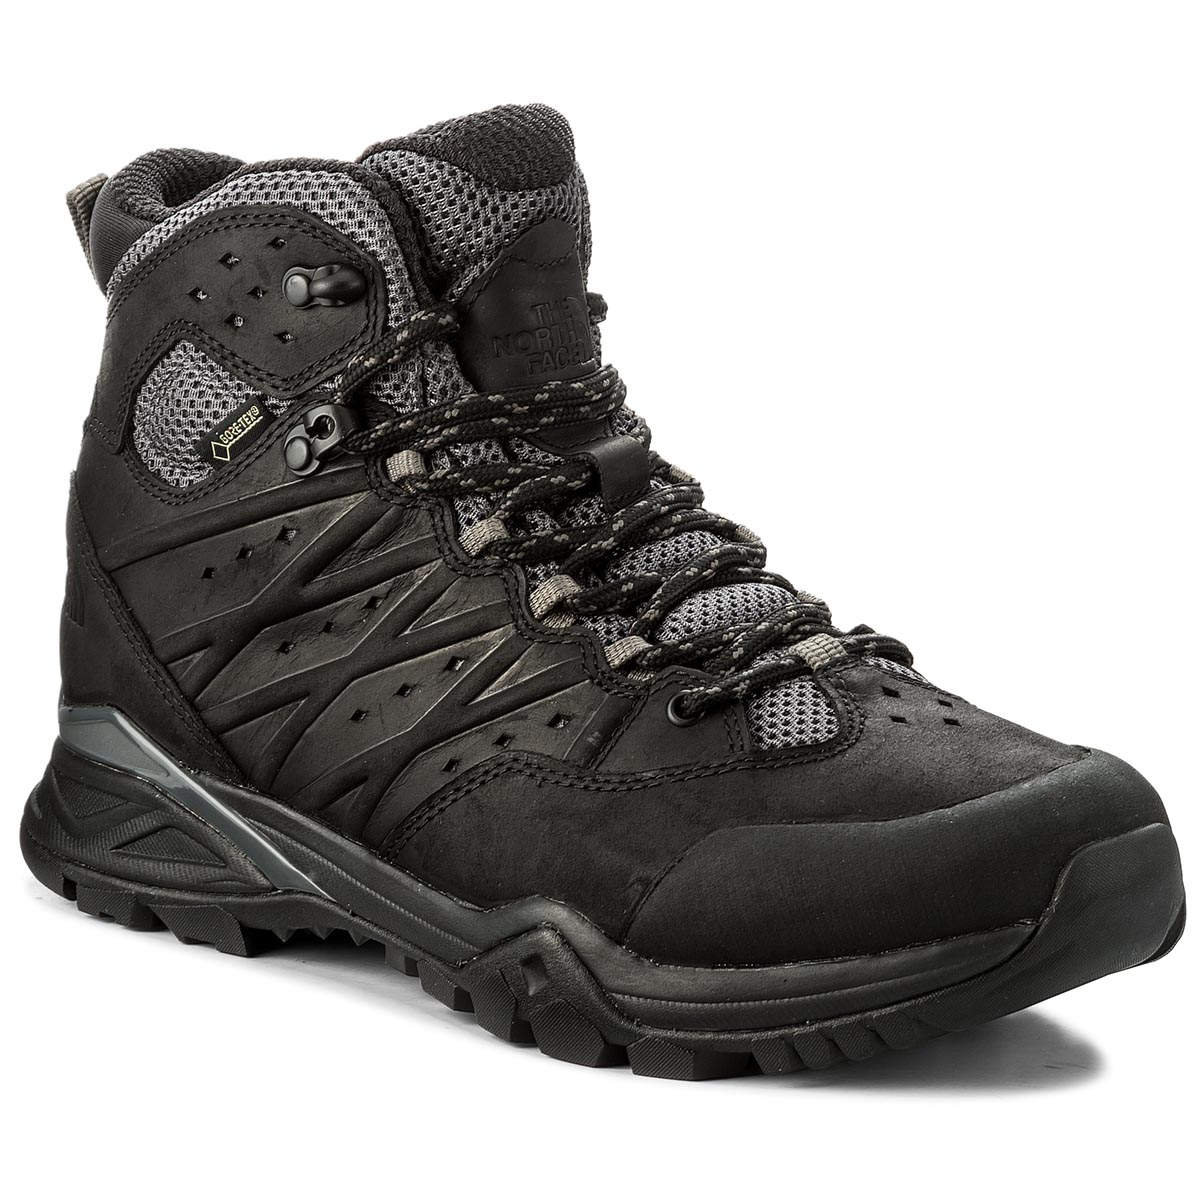 Trekkings THE NORTH FACE - Hedgehog Hike II Mid Gtx GORE-TEX T92YB4KU6 Tnf Black/Graphite Grey